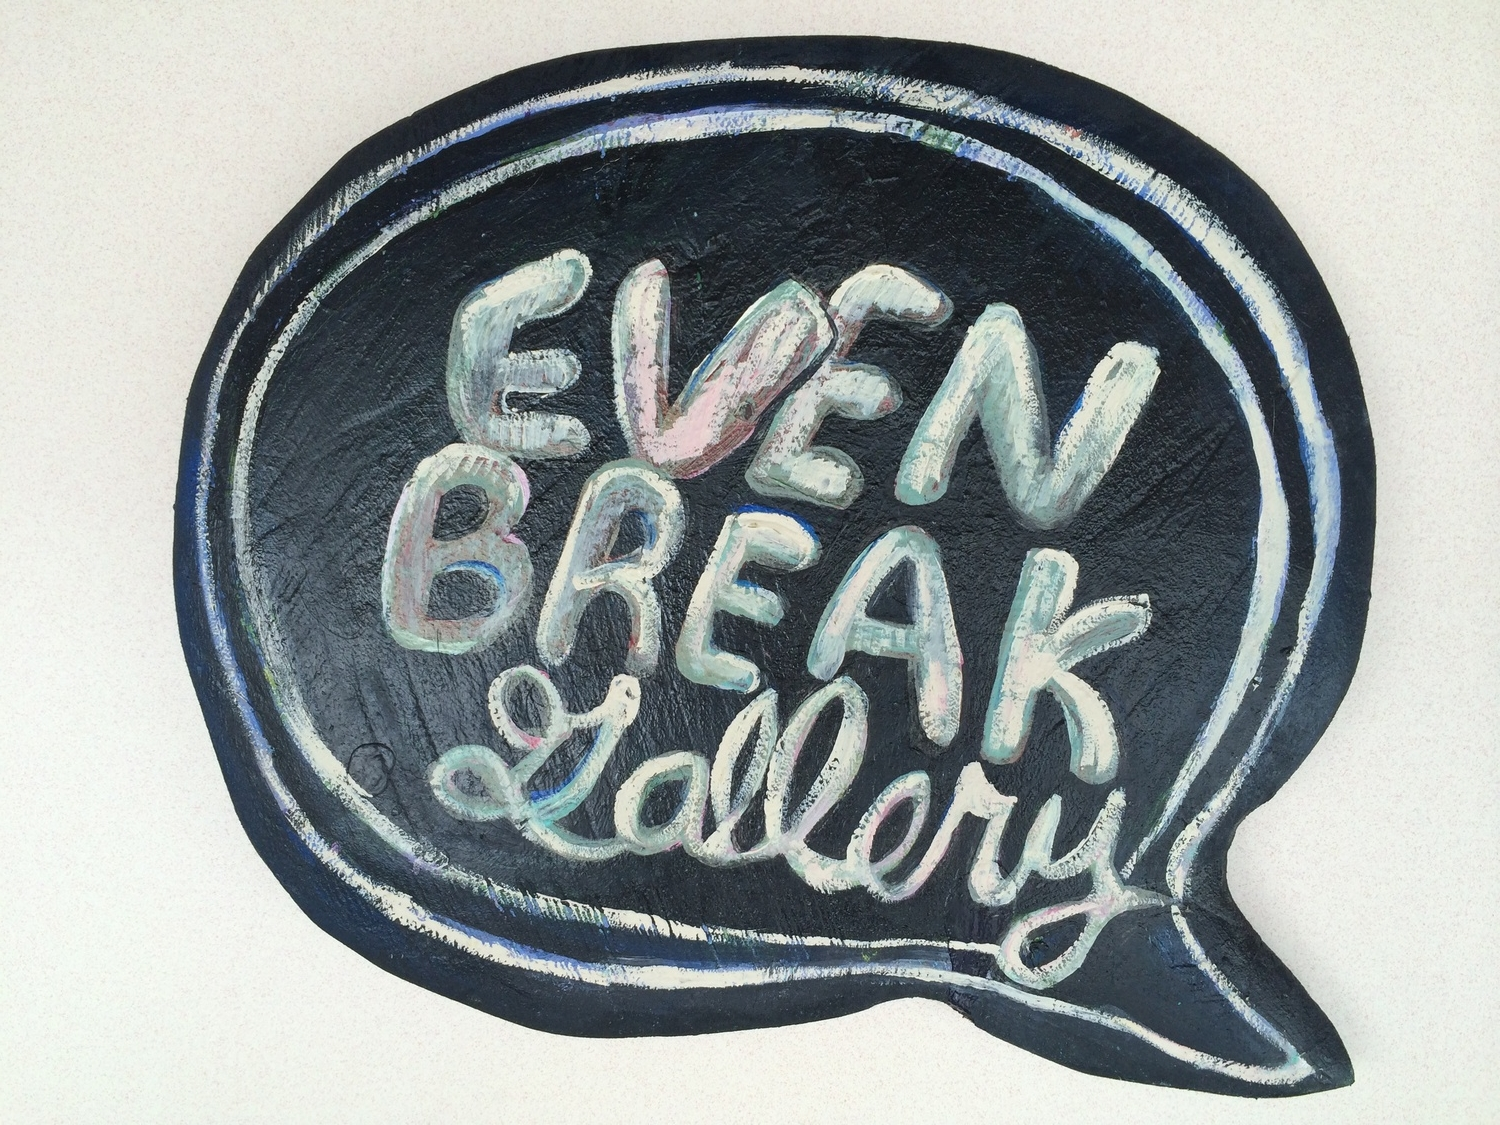 EVEN BREAK Gallery / 2013 / 14 x 17 Acrylic Painting on Wood by Gretchen Seichrist